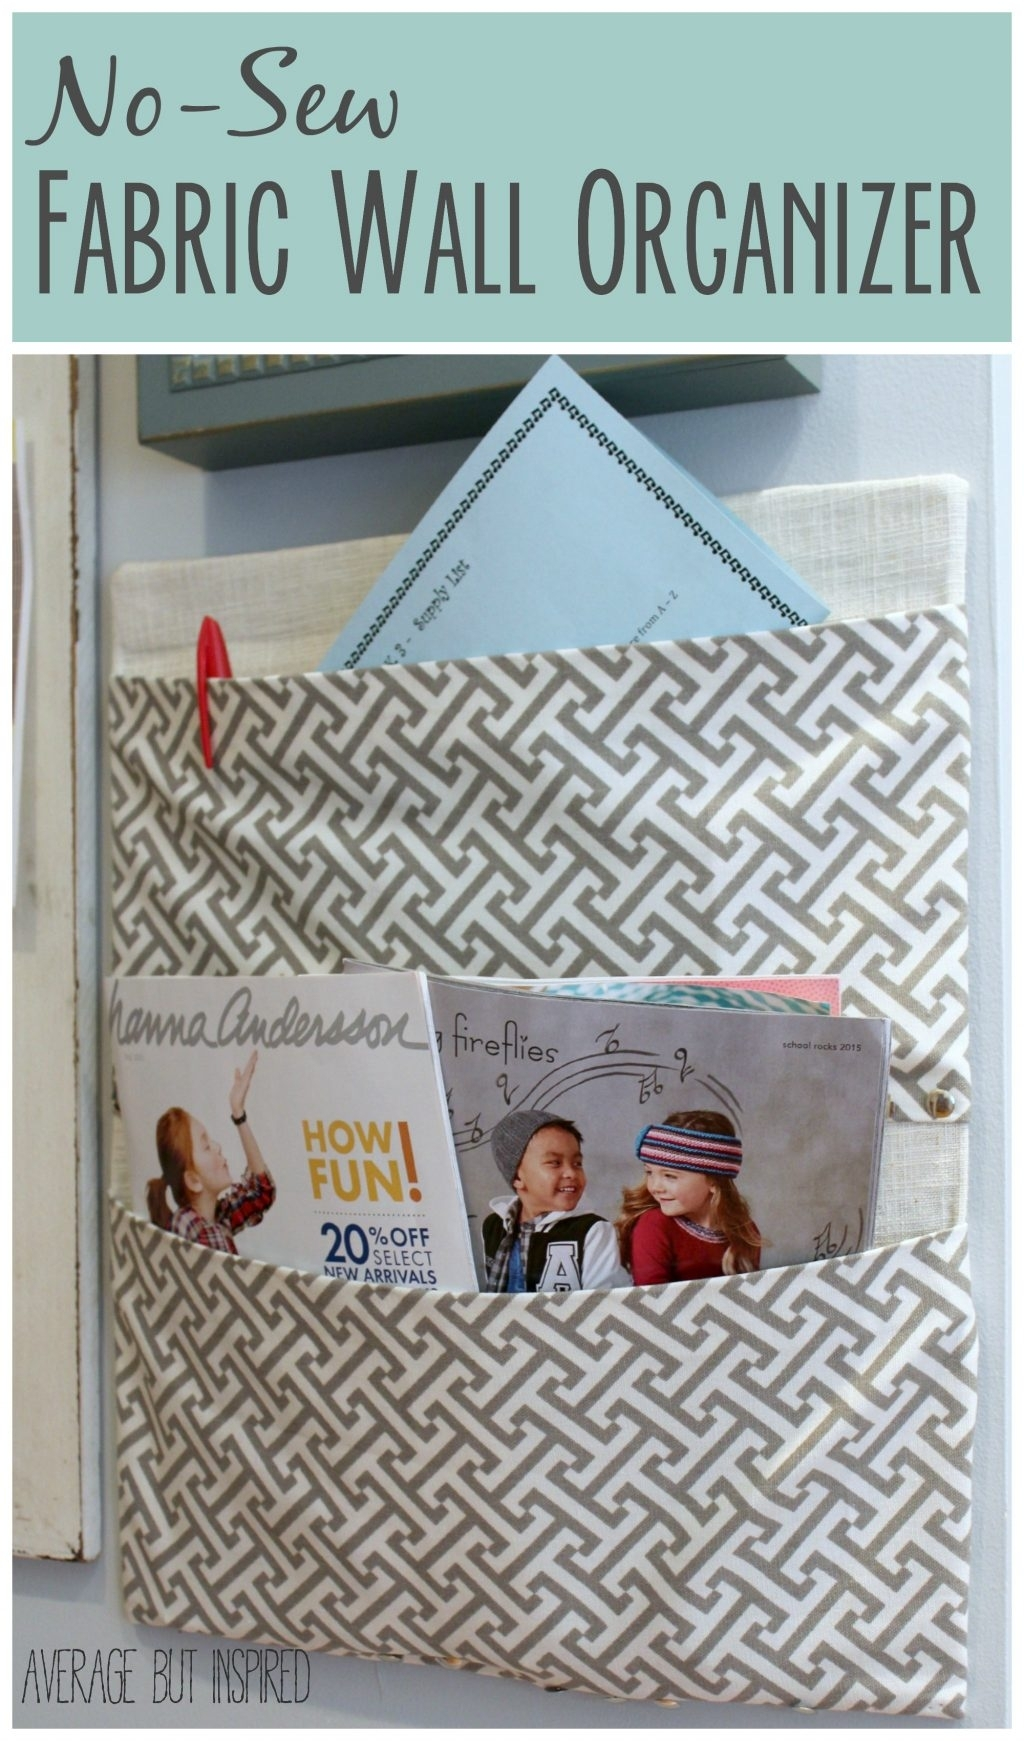 A Diaper Box Becomes A No Sew Fabric Wall Organizer Intended For Latest No Sew Fabric Wall Art (View 7 of 15)